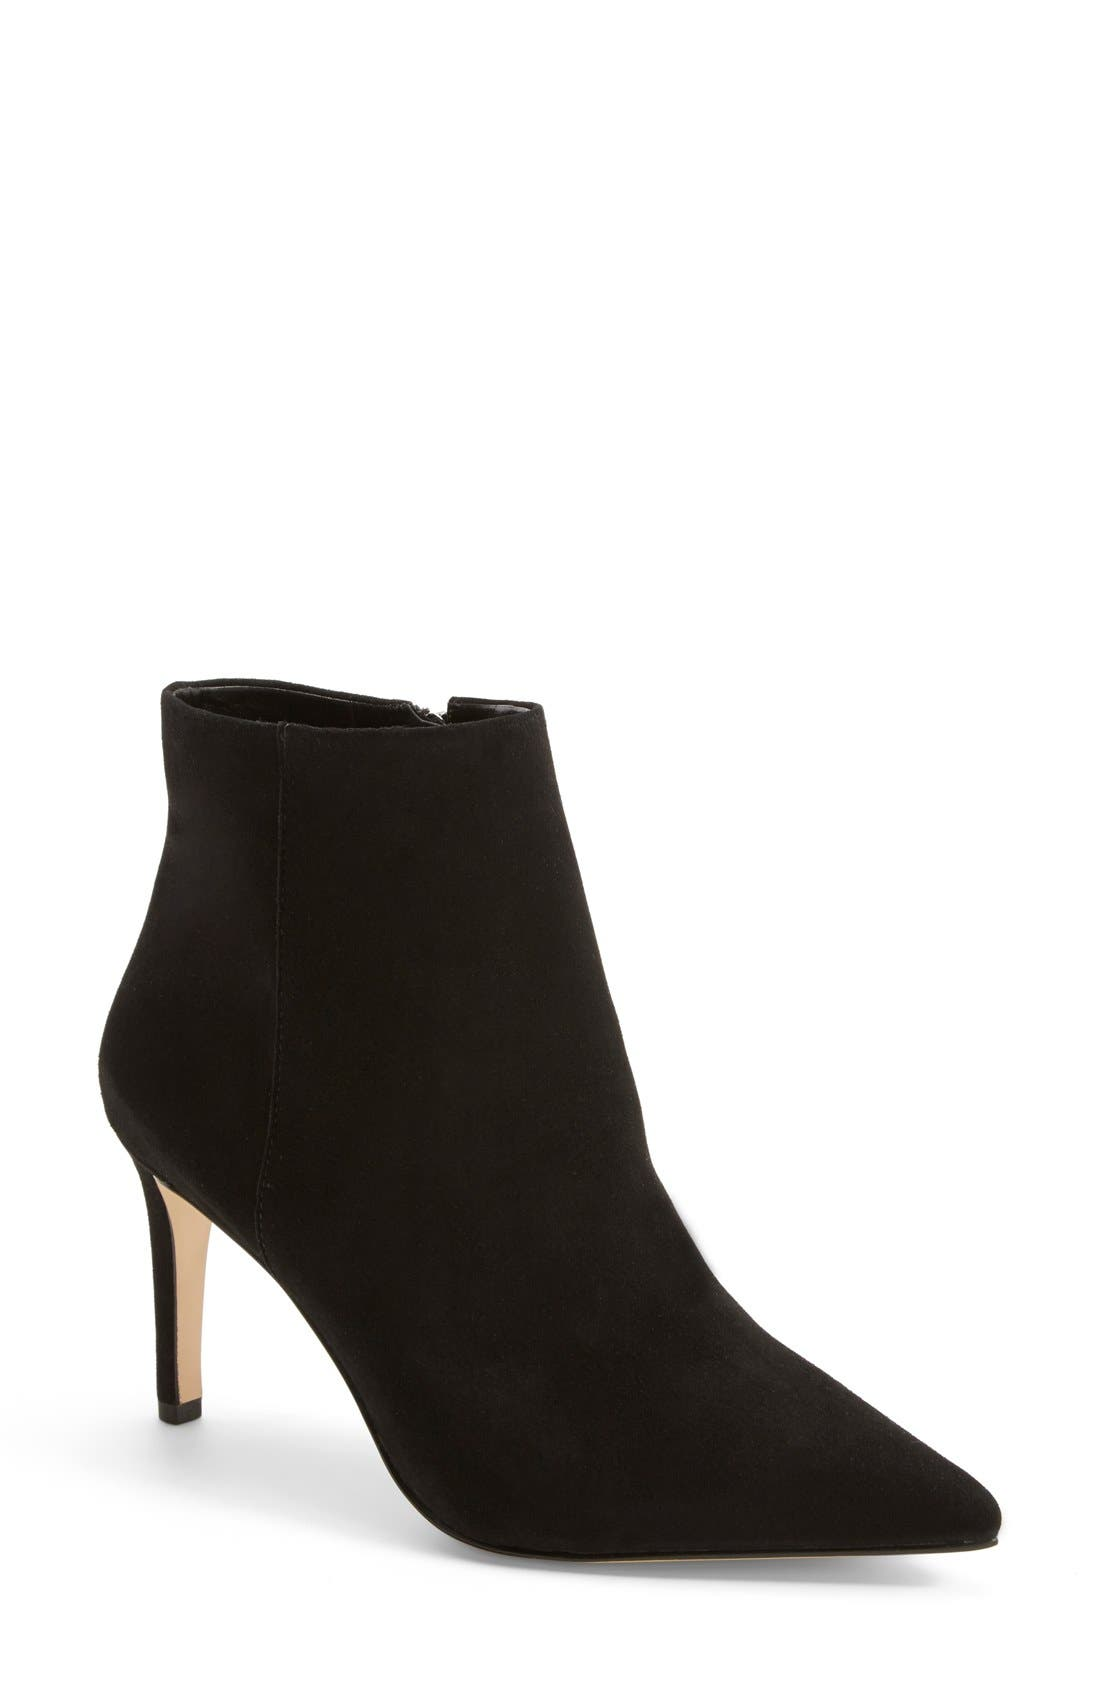 'Karen' Pointy Toe Bootie,                             Main thumbnail 1, color,                             001